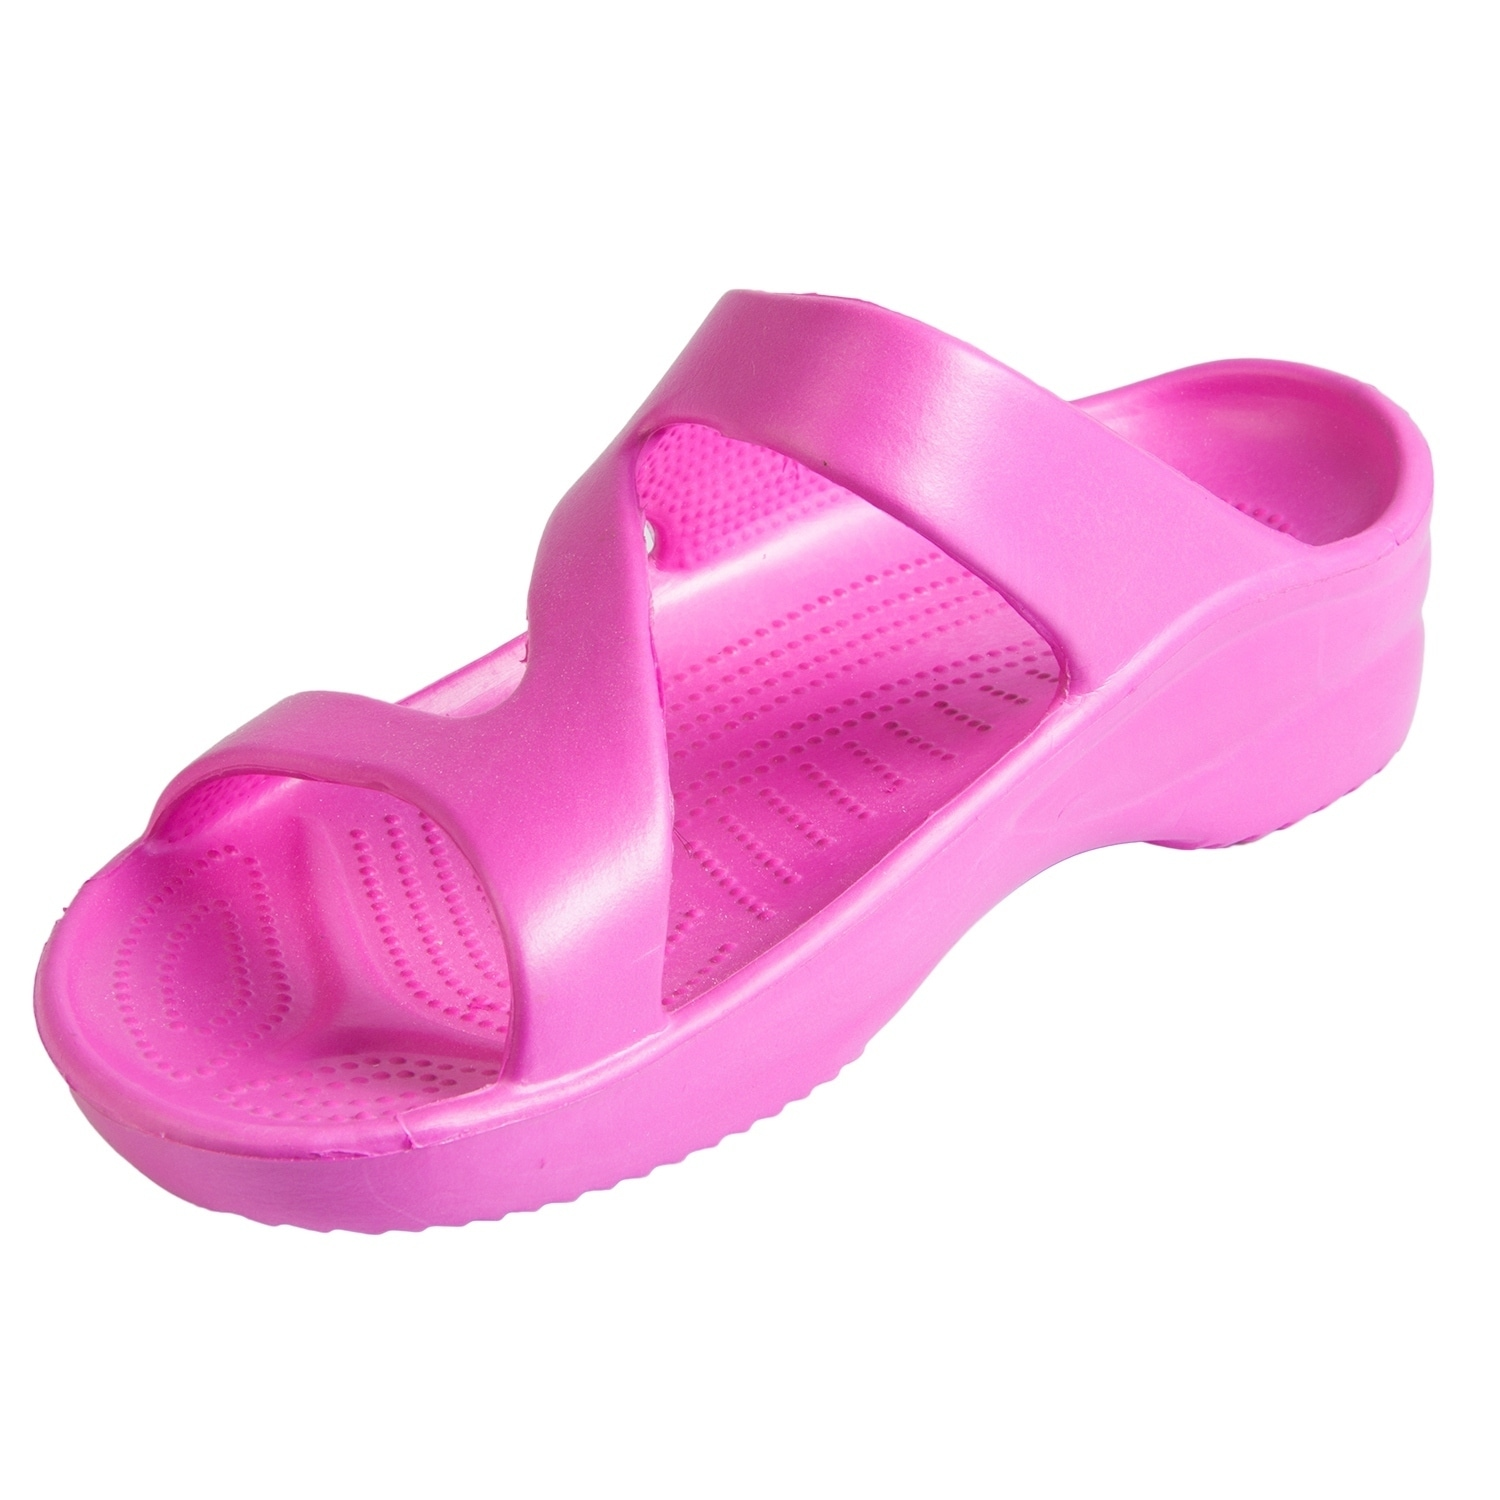 5853ec075d7f Shop Women s Hounds Z Sandals - On Sale - Free Shipping On Orders Over  45  - Overstock - 20615145